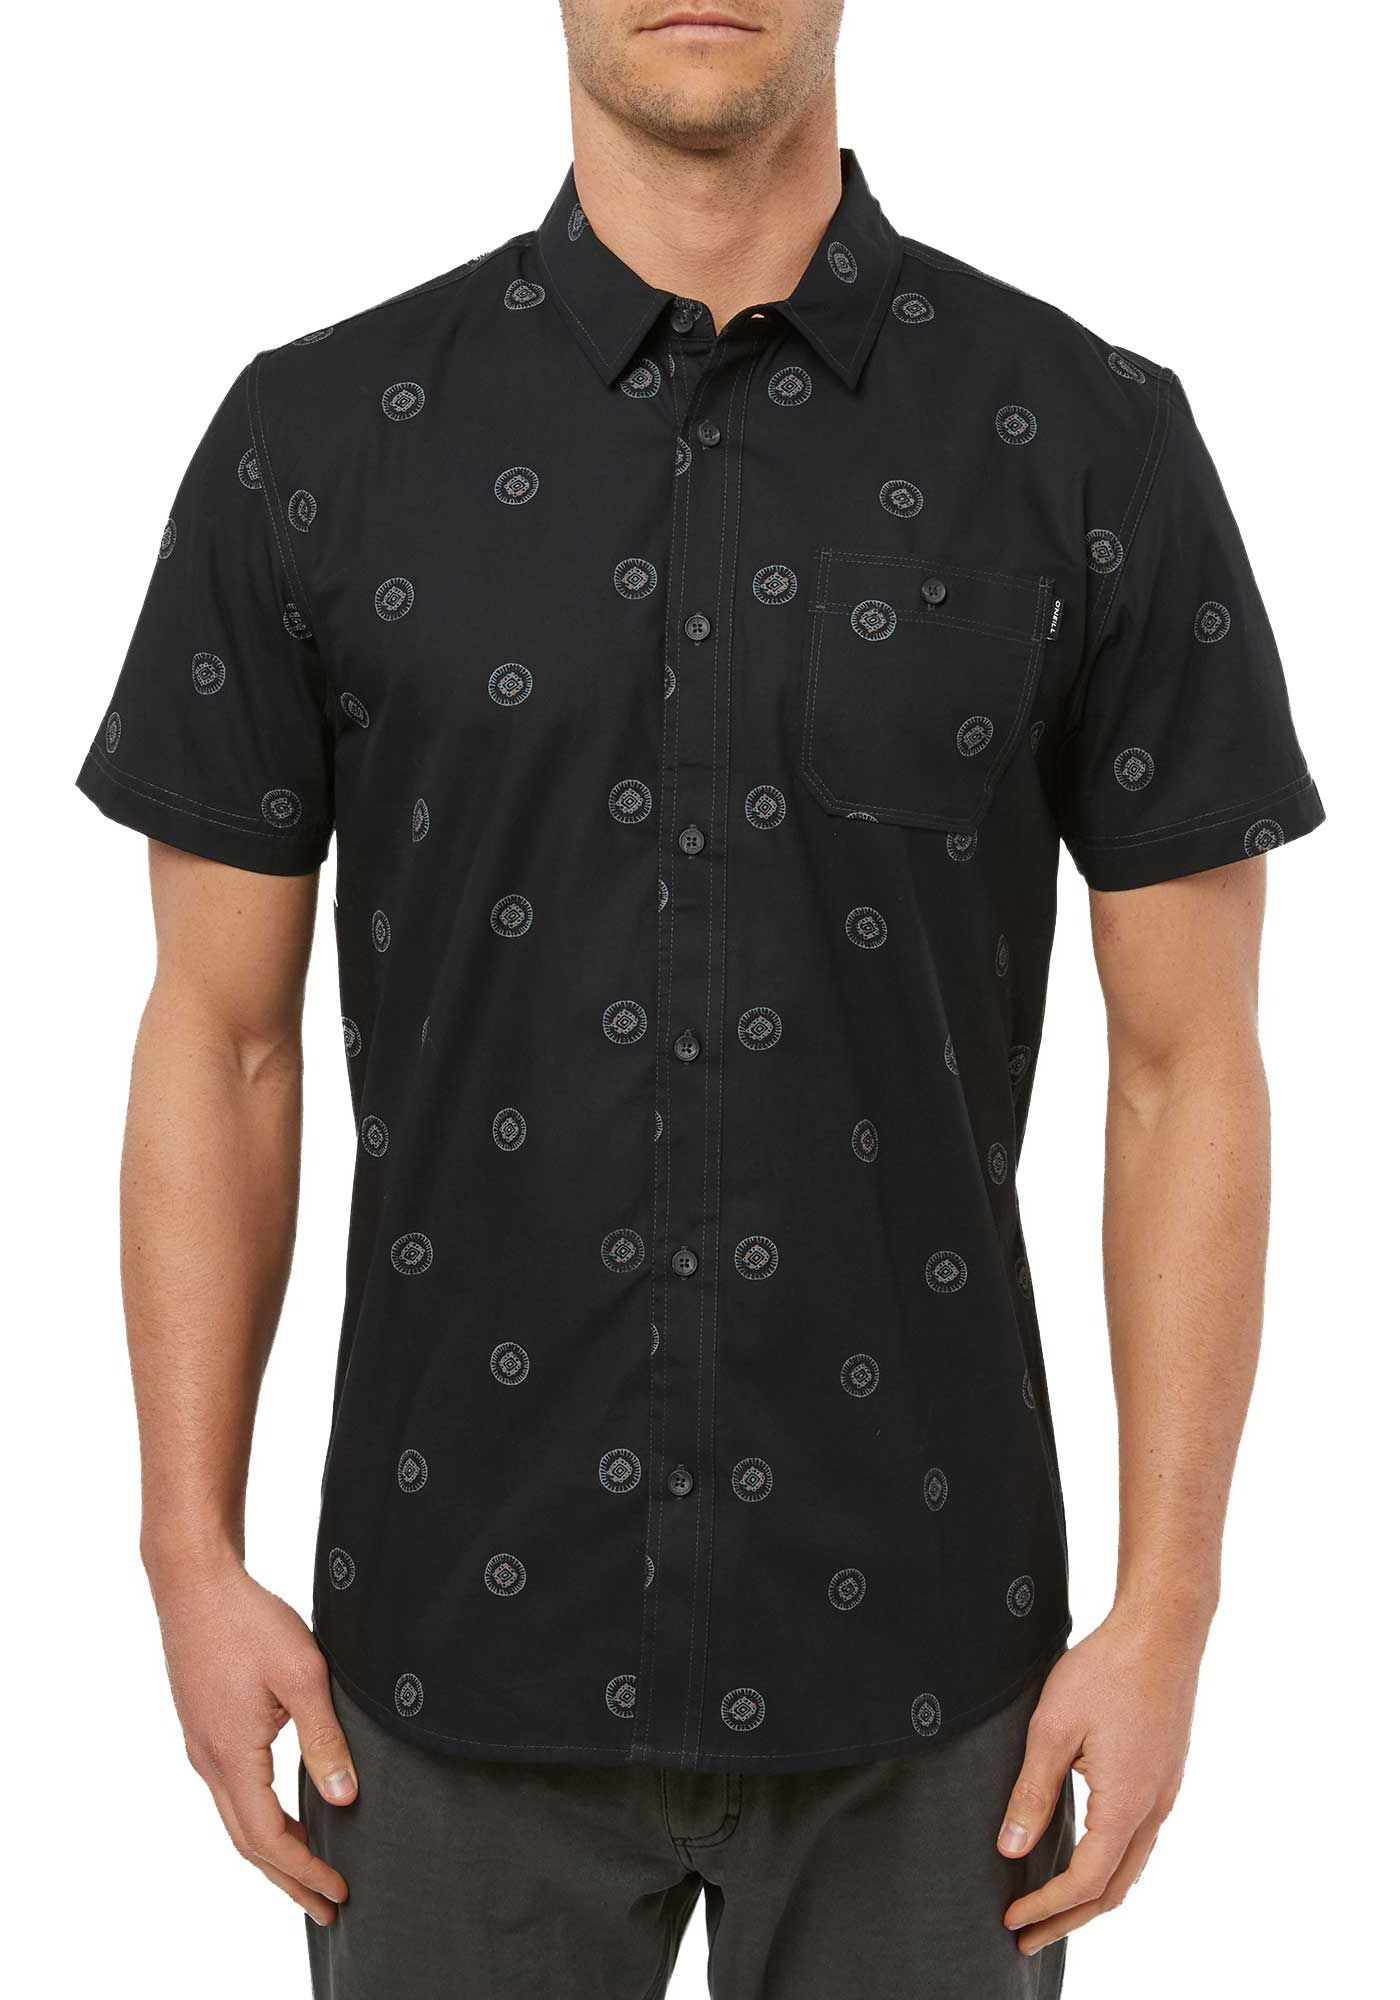 O'Neill Men's Benny Mix Pack Short Sleeve Button Down Shirt